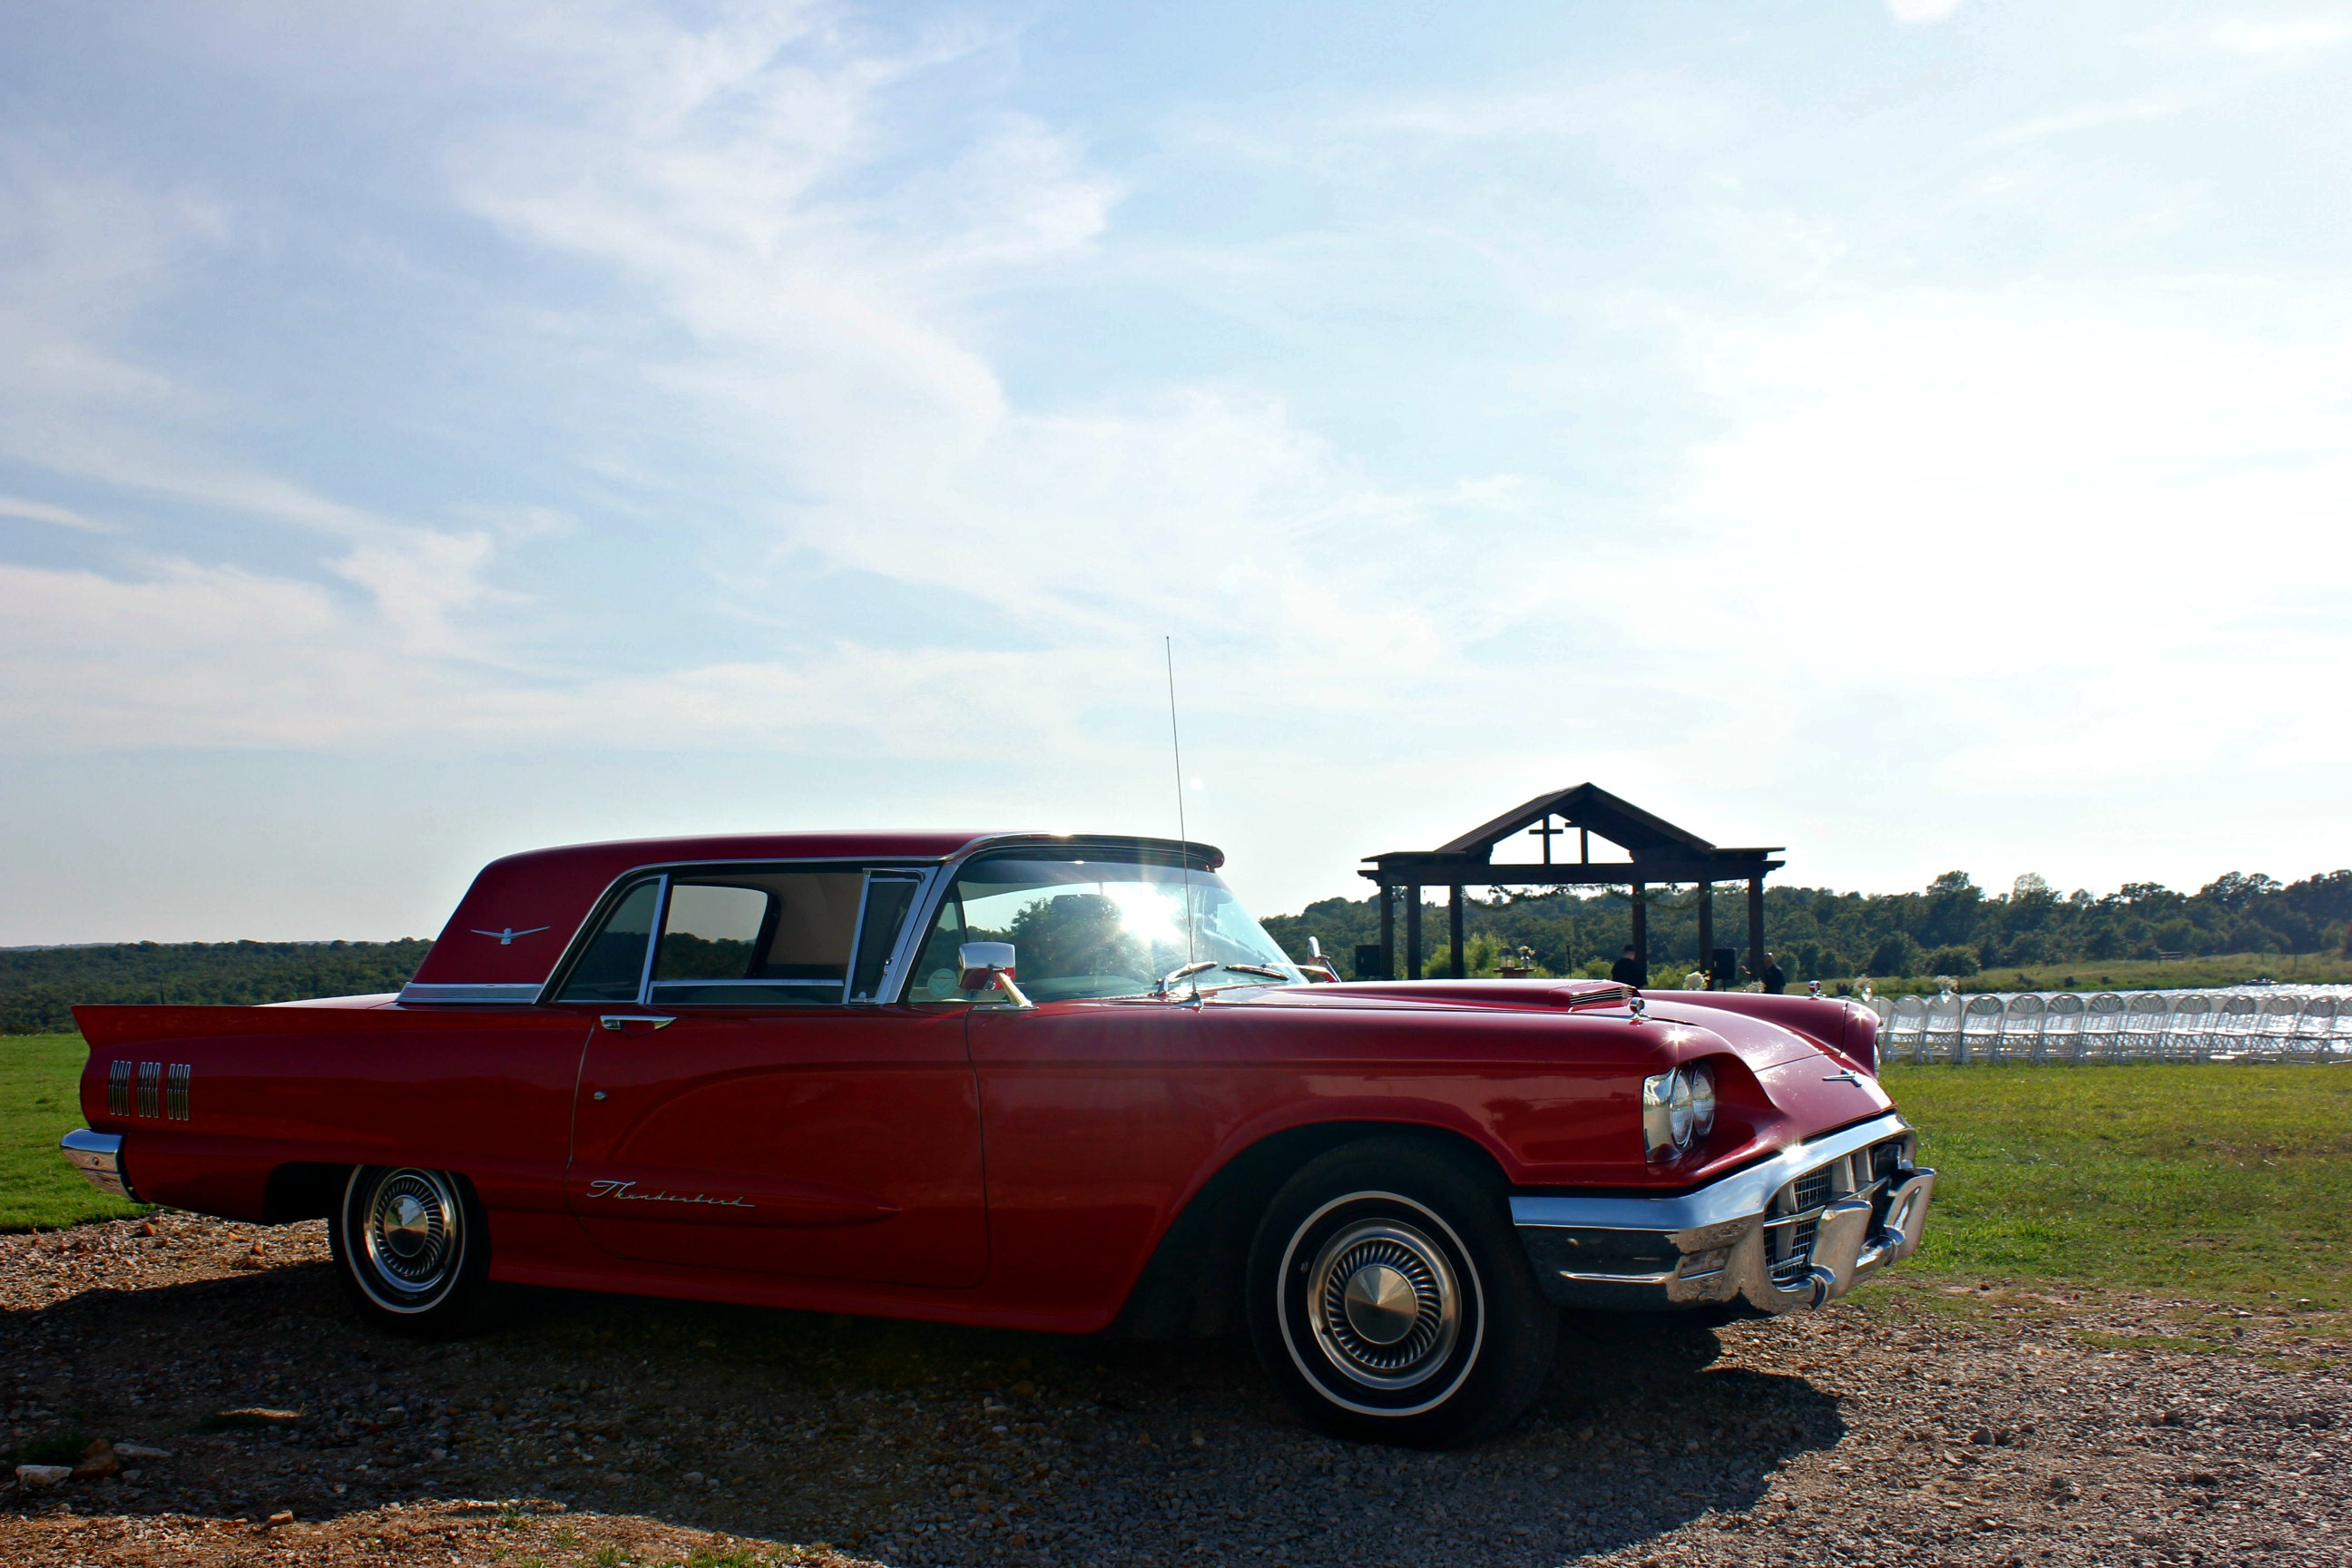 tulsa wedding venues car